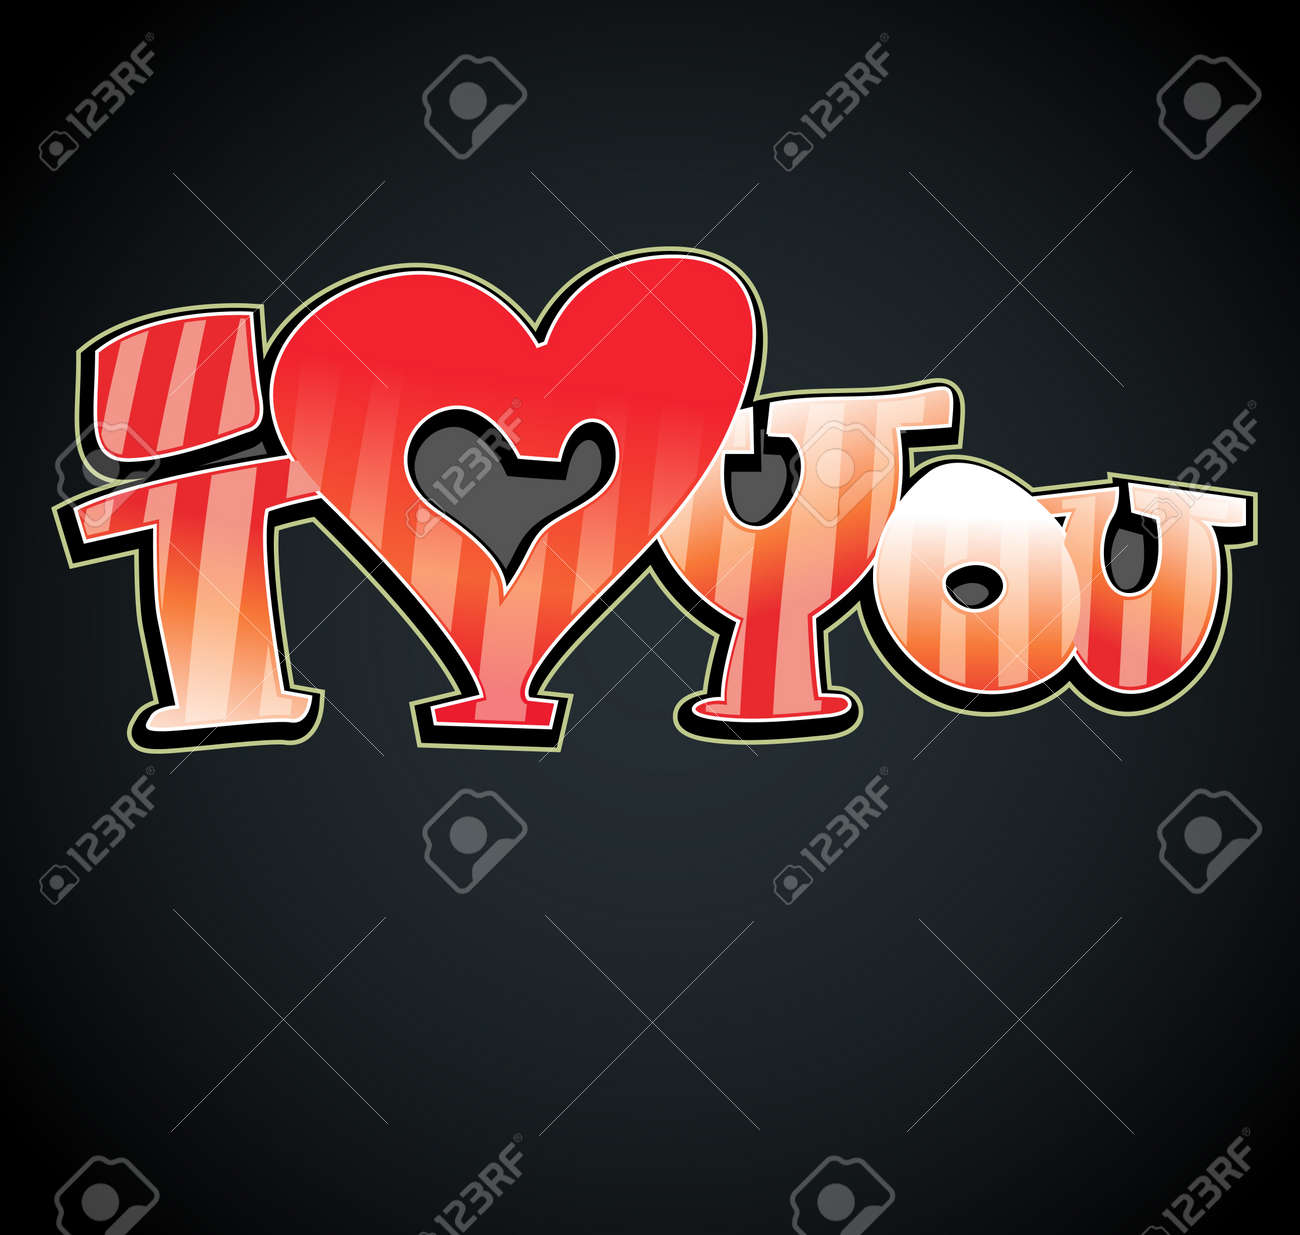 I love you graffiti art Stock Vector - 11486011